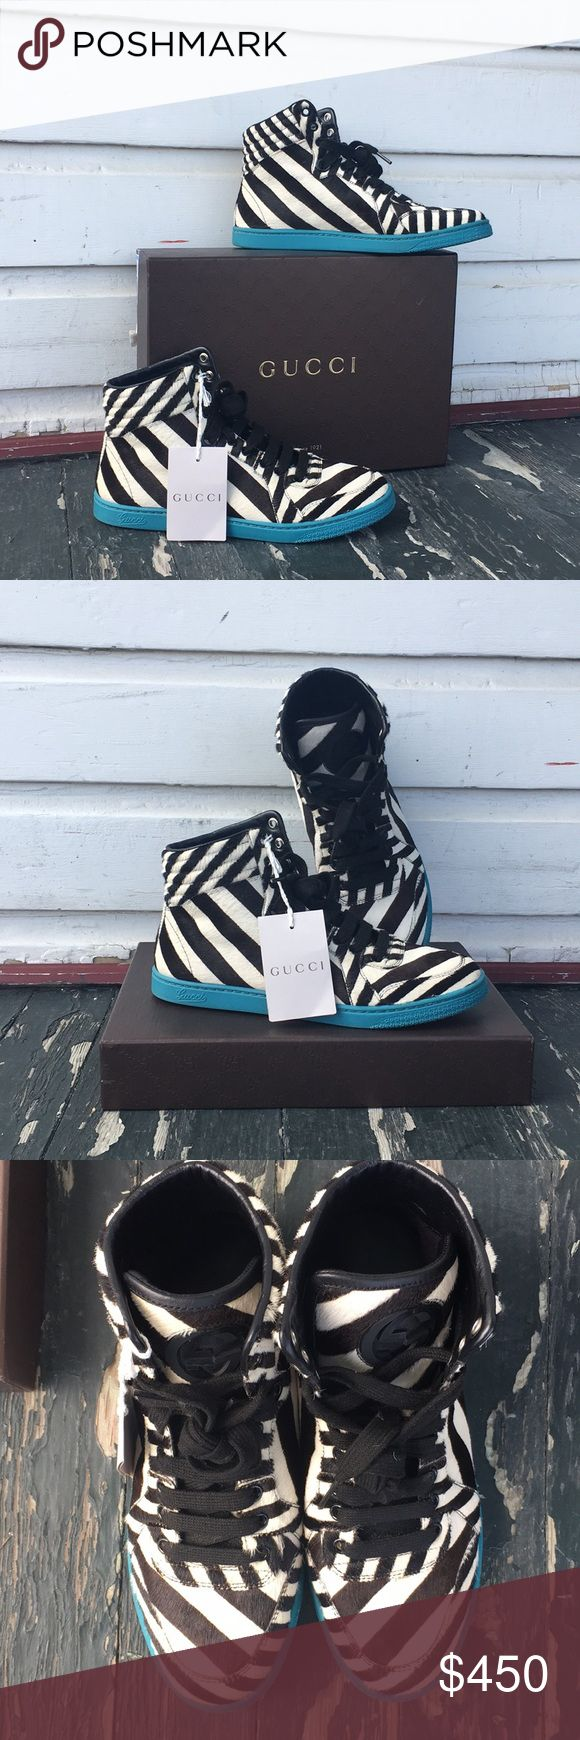 New! Gucci Zebra High Tops Gucci Zebra High Top Sneakers! Brand new with tags, box and original dustbag! Calf hair and leather. Gucci logo on tongue. Aqua base adds a unique splash of color! Padded lining and ankle. Round toe. Have some glue stains on toe as shown, came like that from the manufacturer! Size 37.5 fits a true US 6.5/7! Such a unique piece. I believe these are totally sold out! Unisex! Gucci Shoes Sneakers